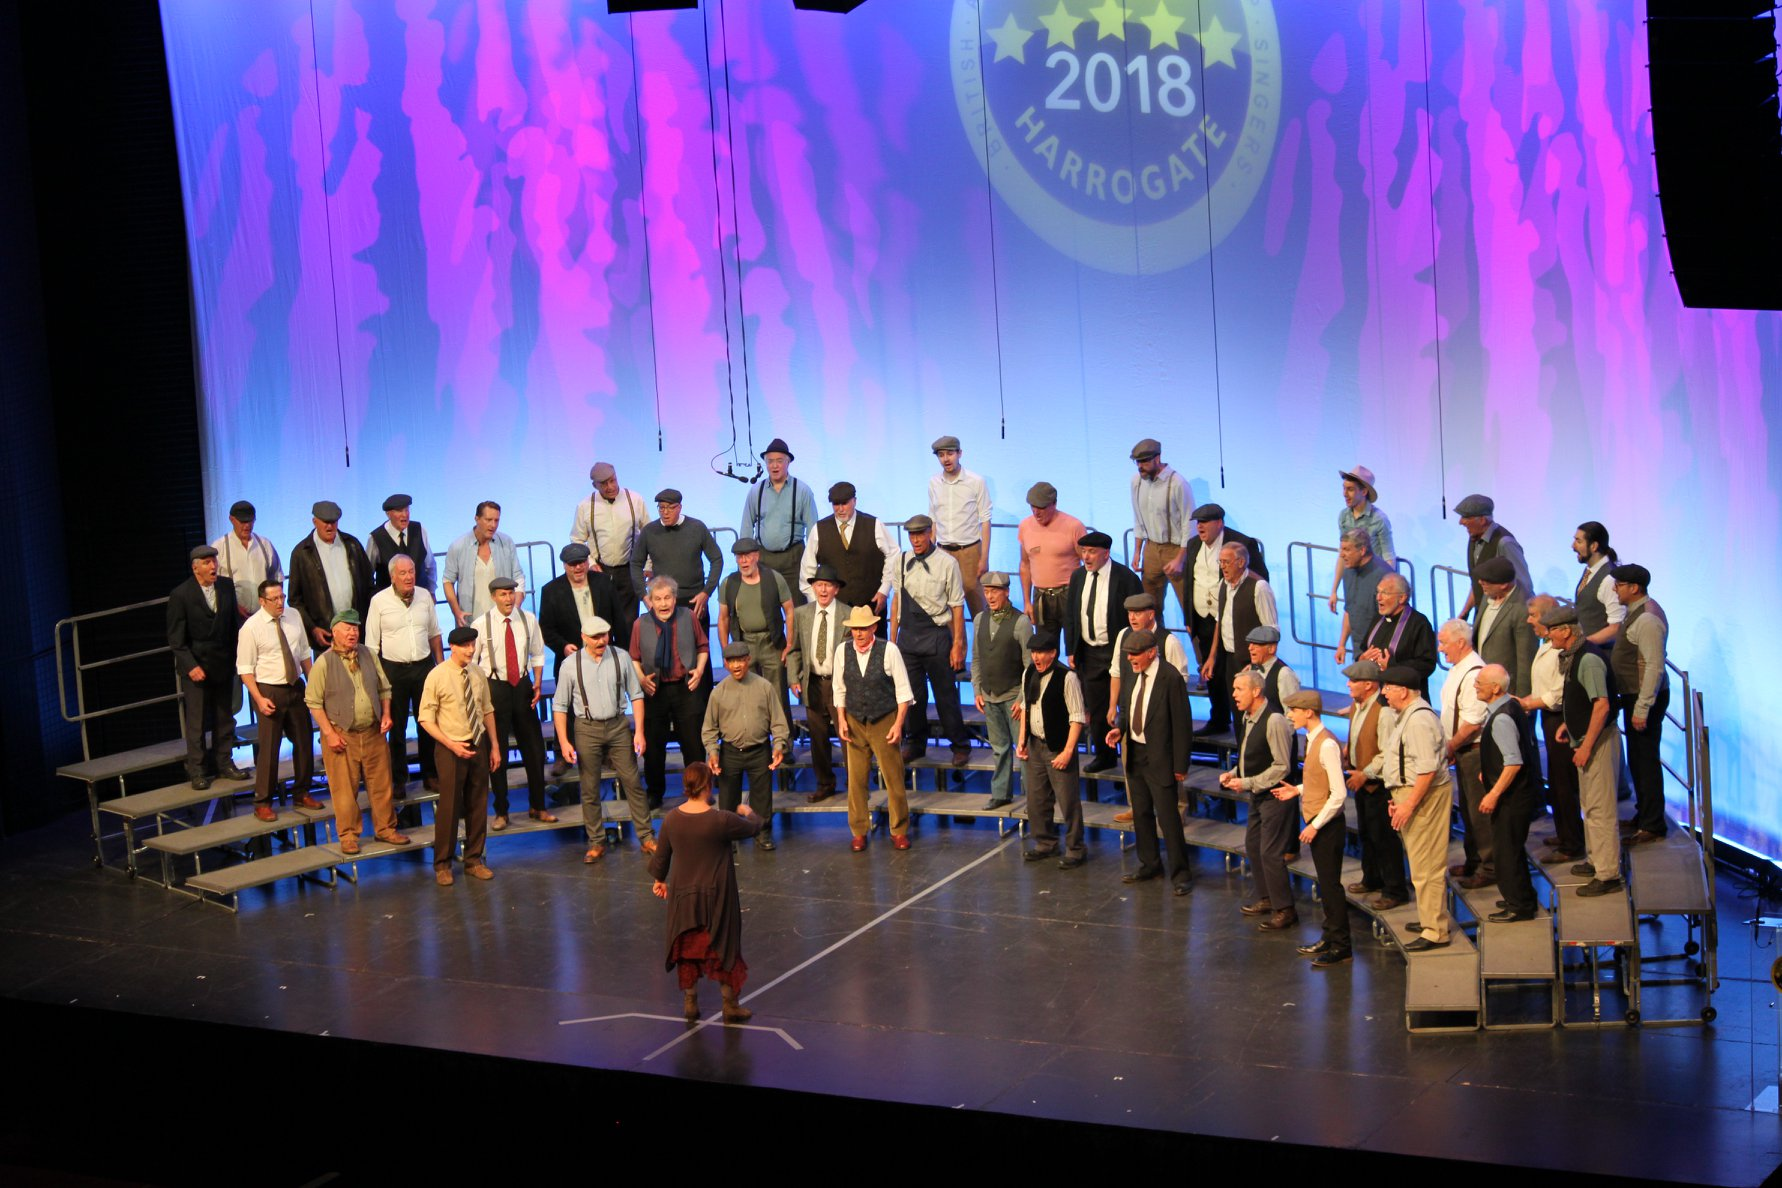 Spirit of Harmony perform at the 2018 BABS Convention in Harrogate, 26th May 2018